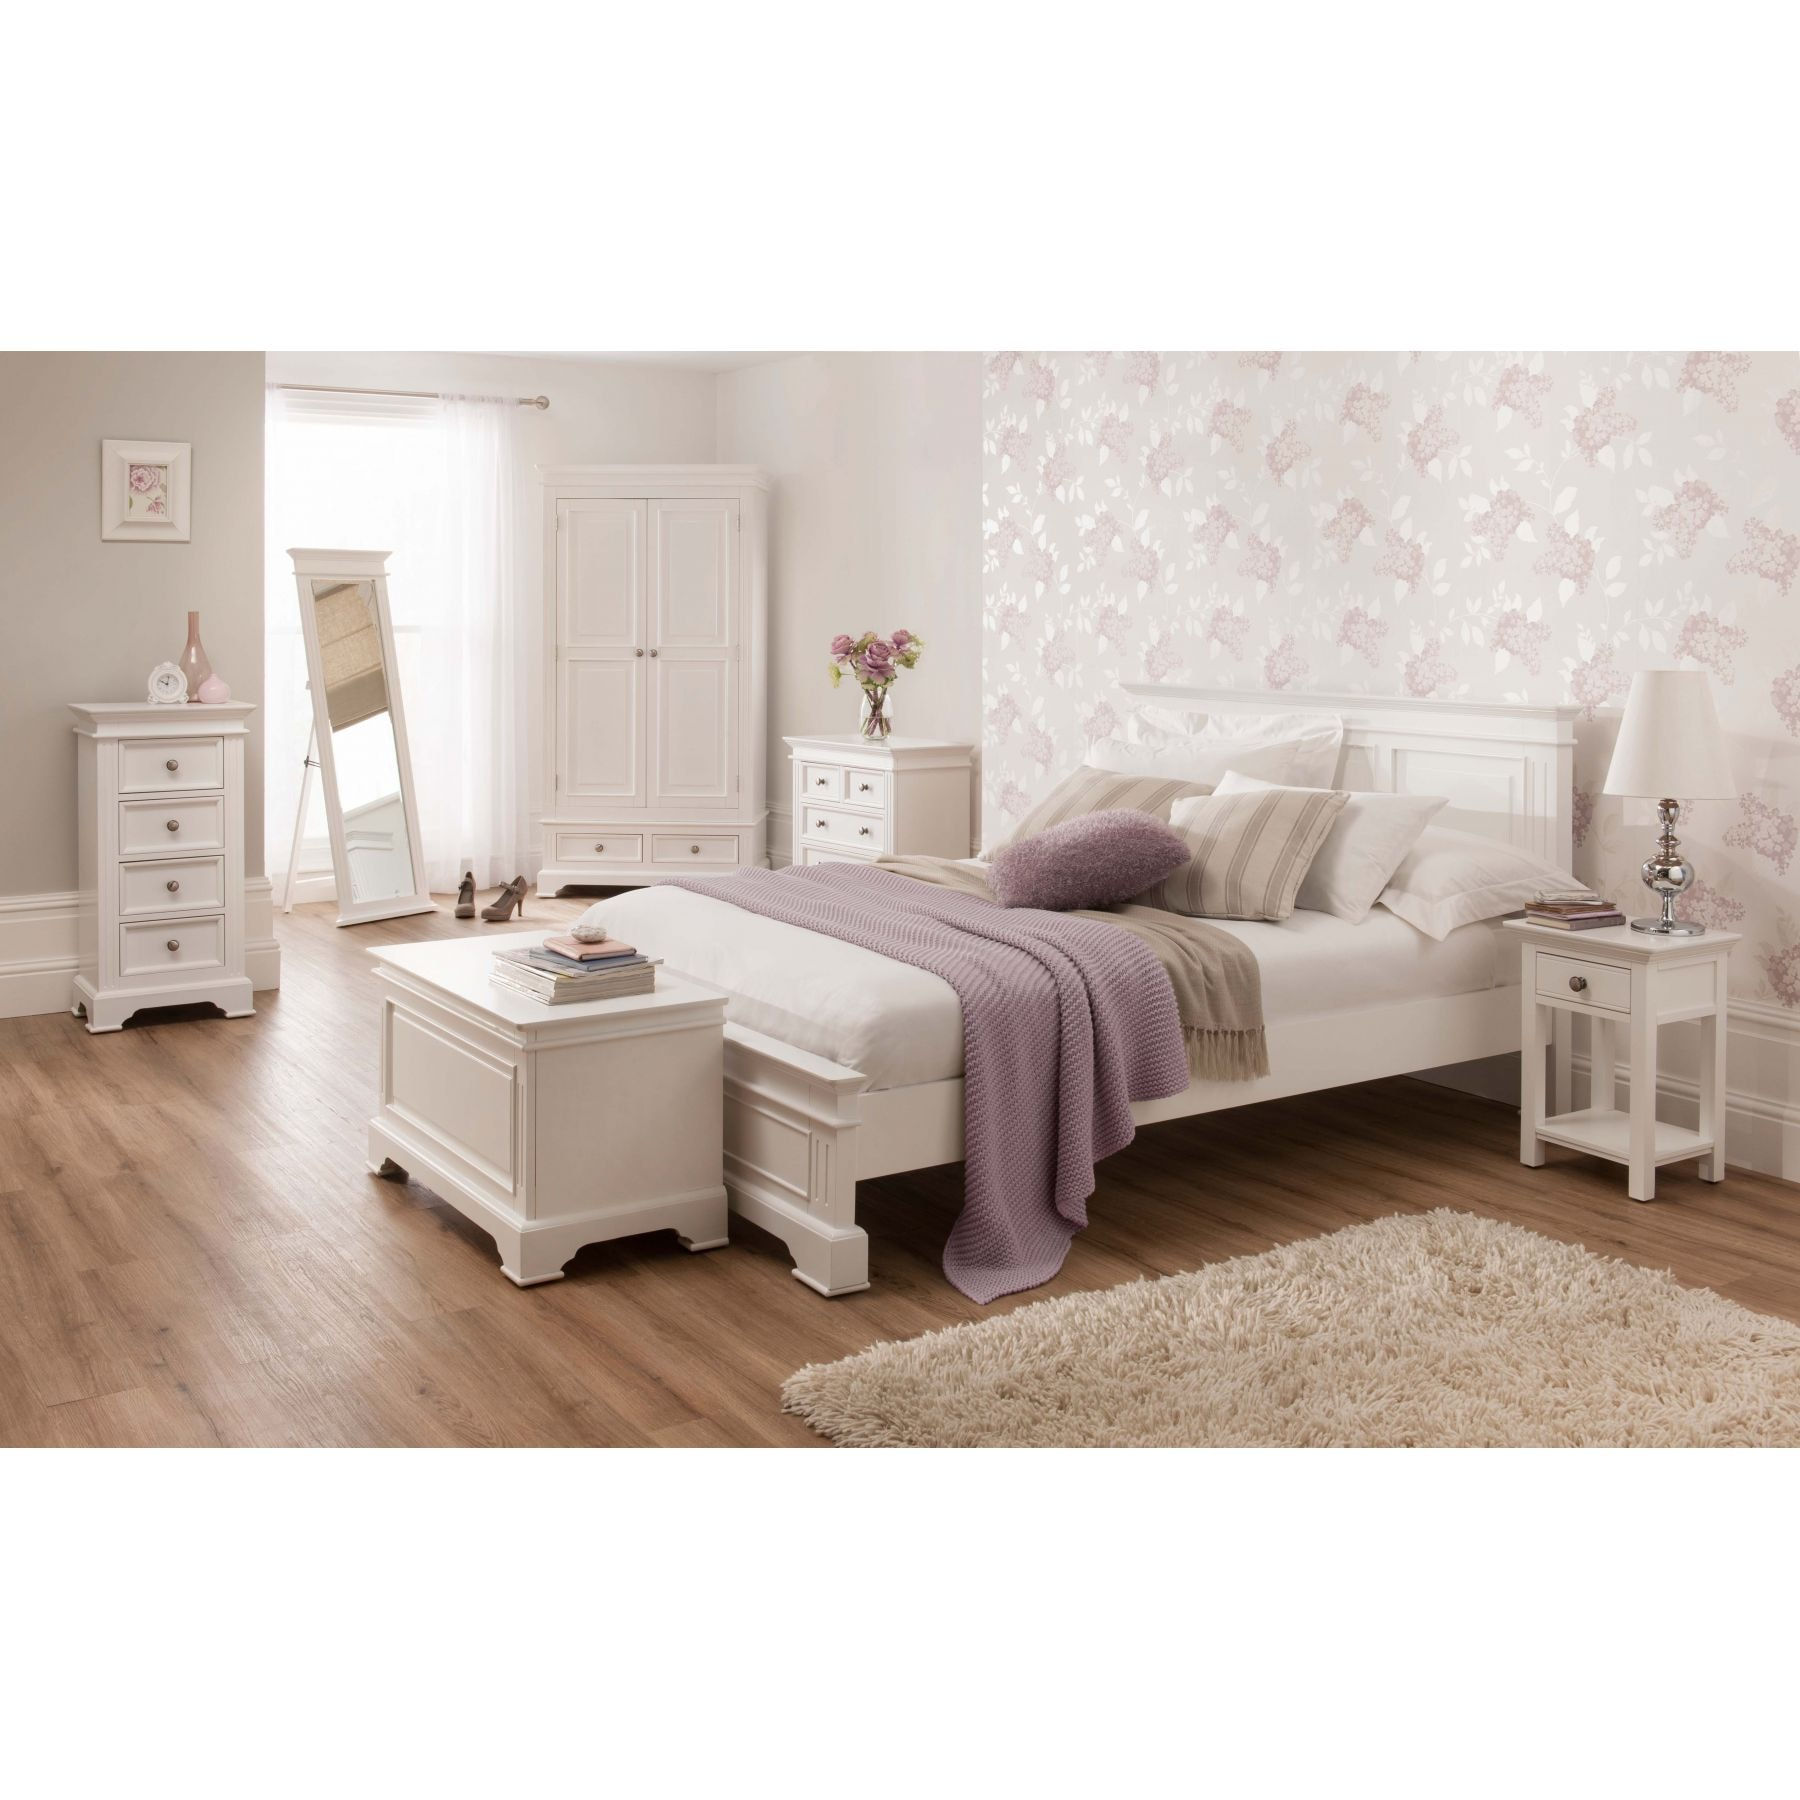 Sophia Bedroom Furniture Sophia Shabby Chic Cheval Mirror Works Well Alongside Our Antique